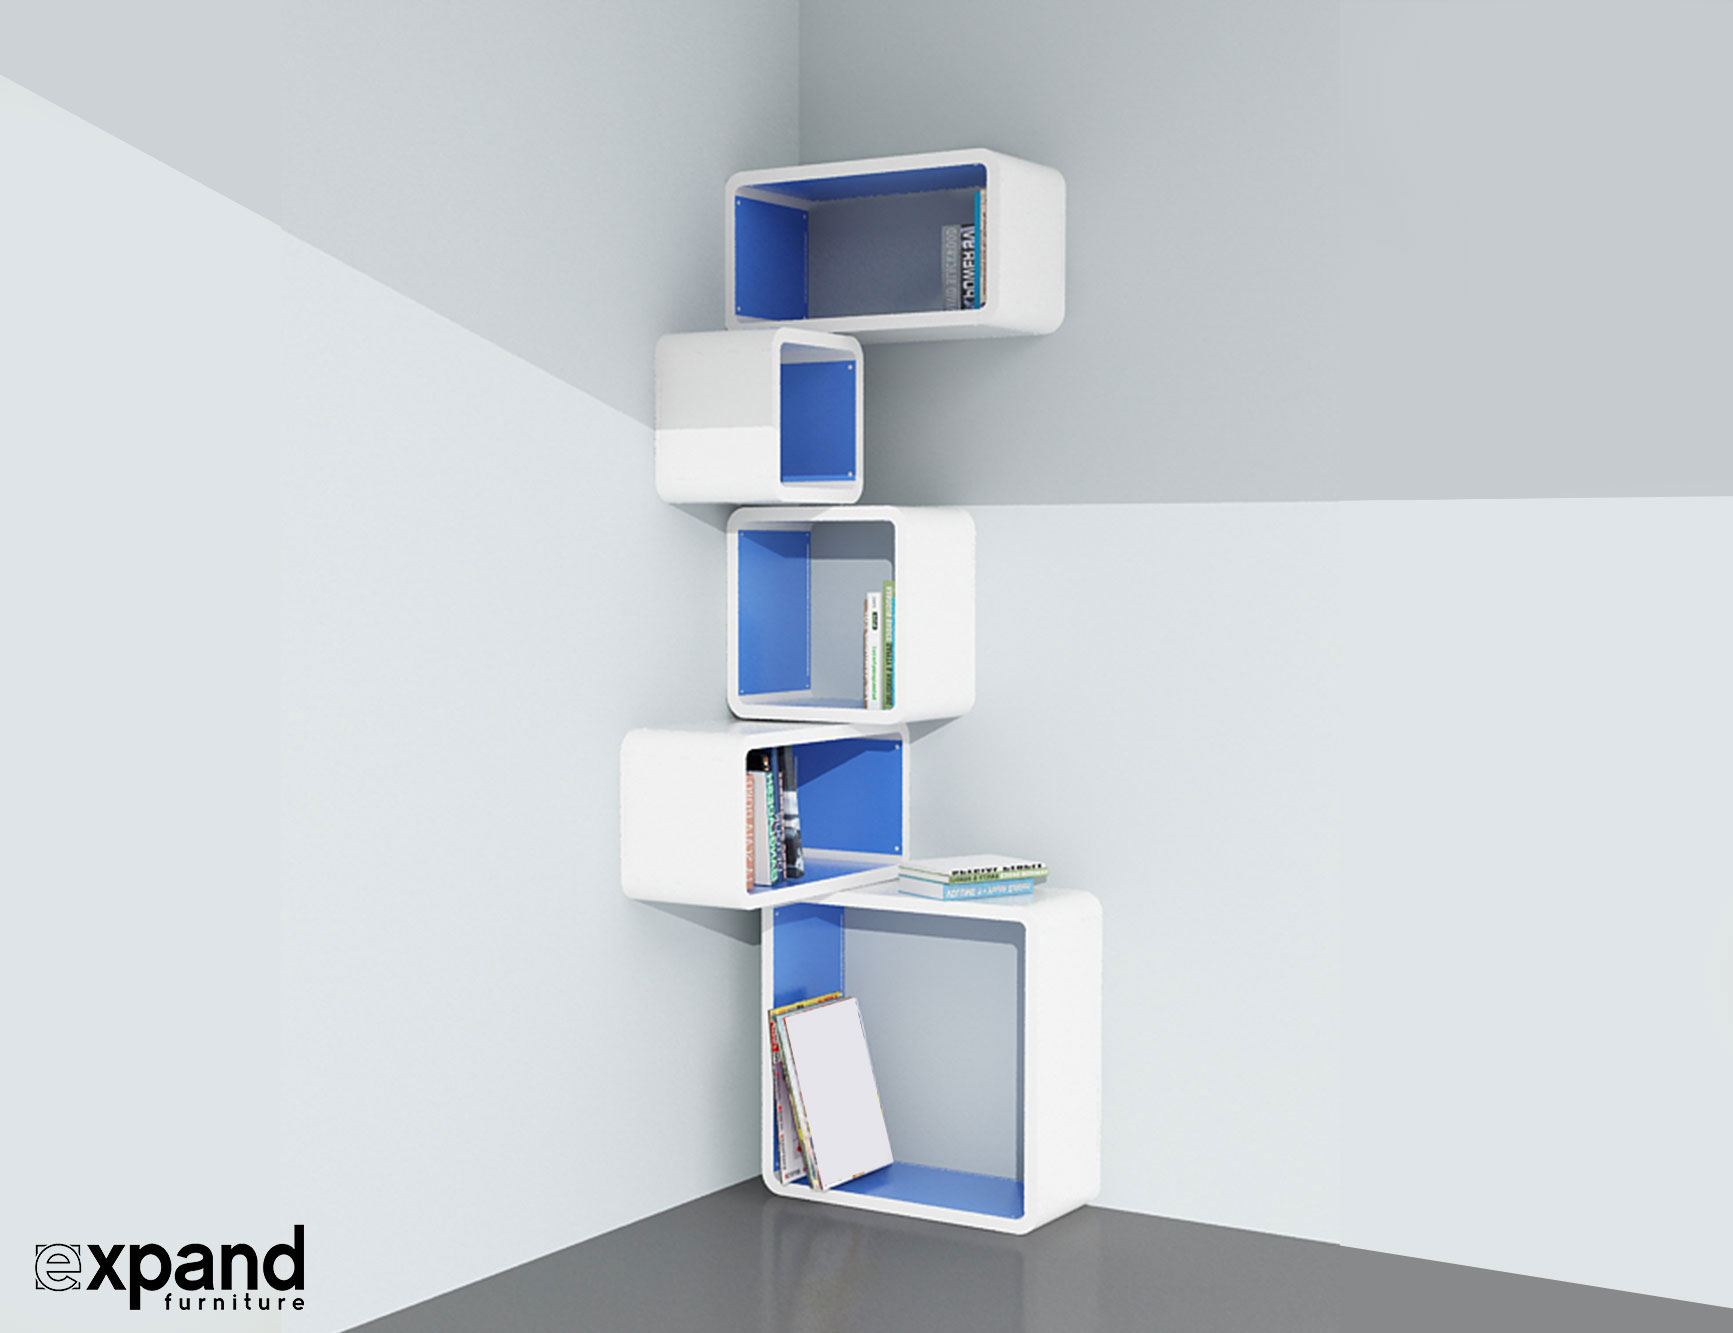 Modular Corner Cube Shelf M Expand Furniture : Modular Corner Cube Wall Shelf M in white and Blue from expandfurniture.com size 1733 x 1333 jpeg 91kB